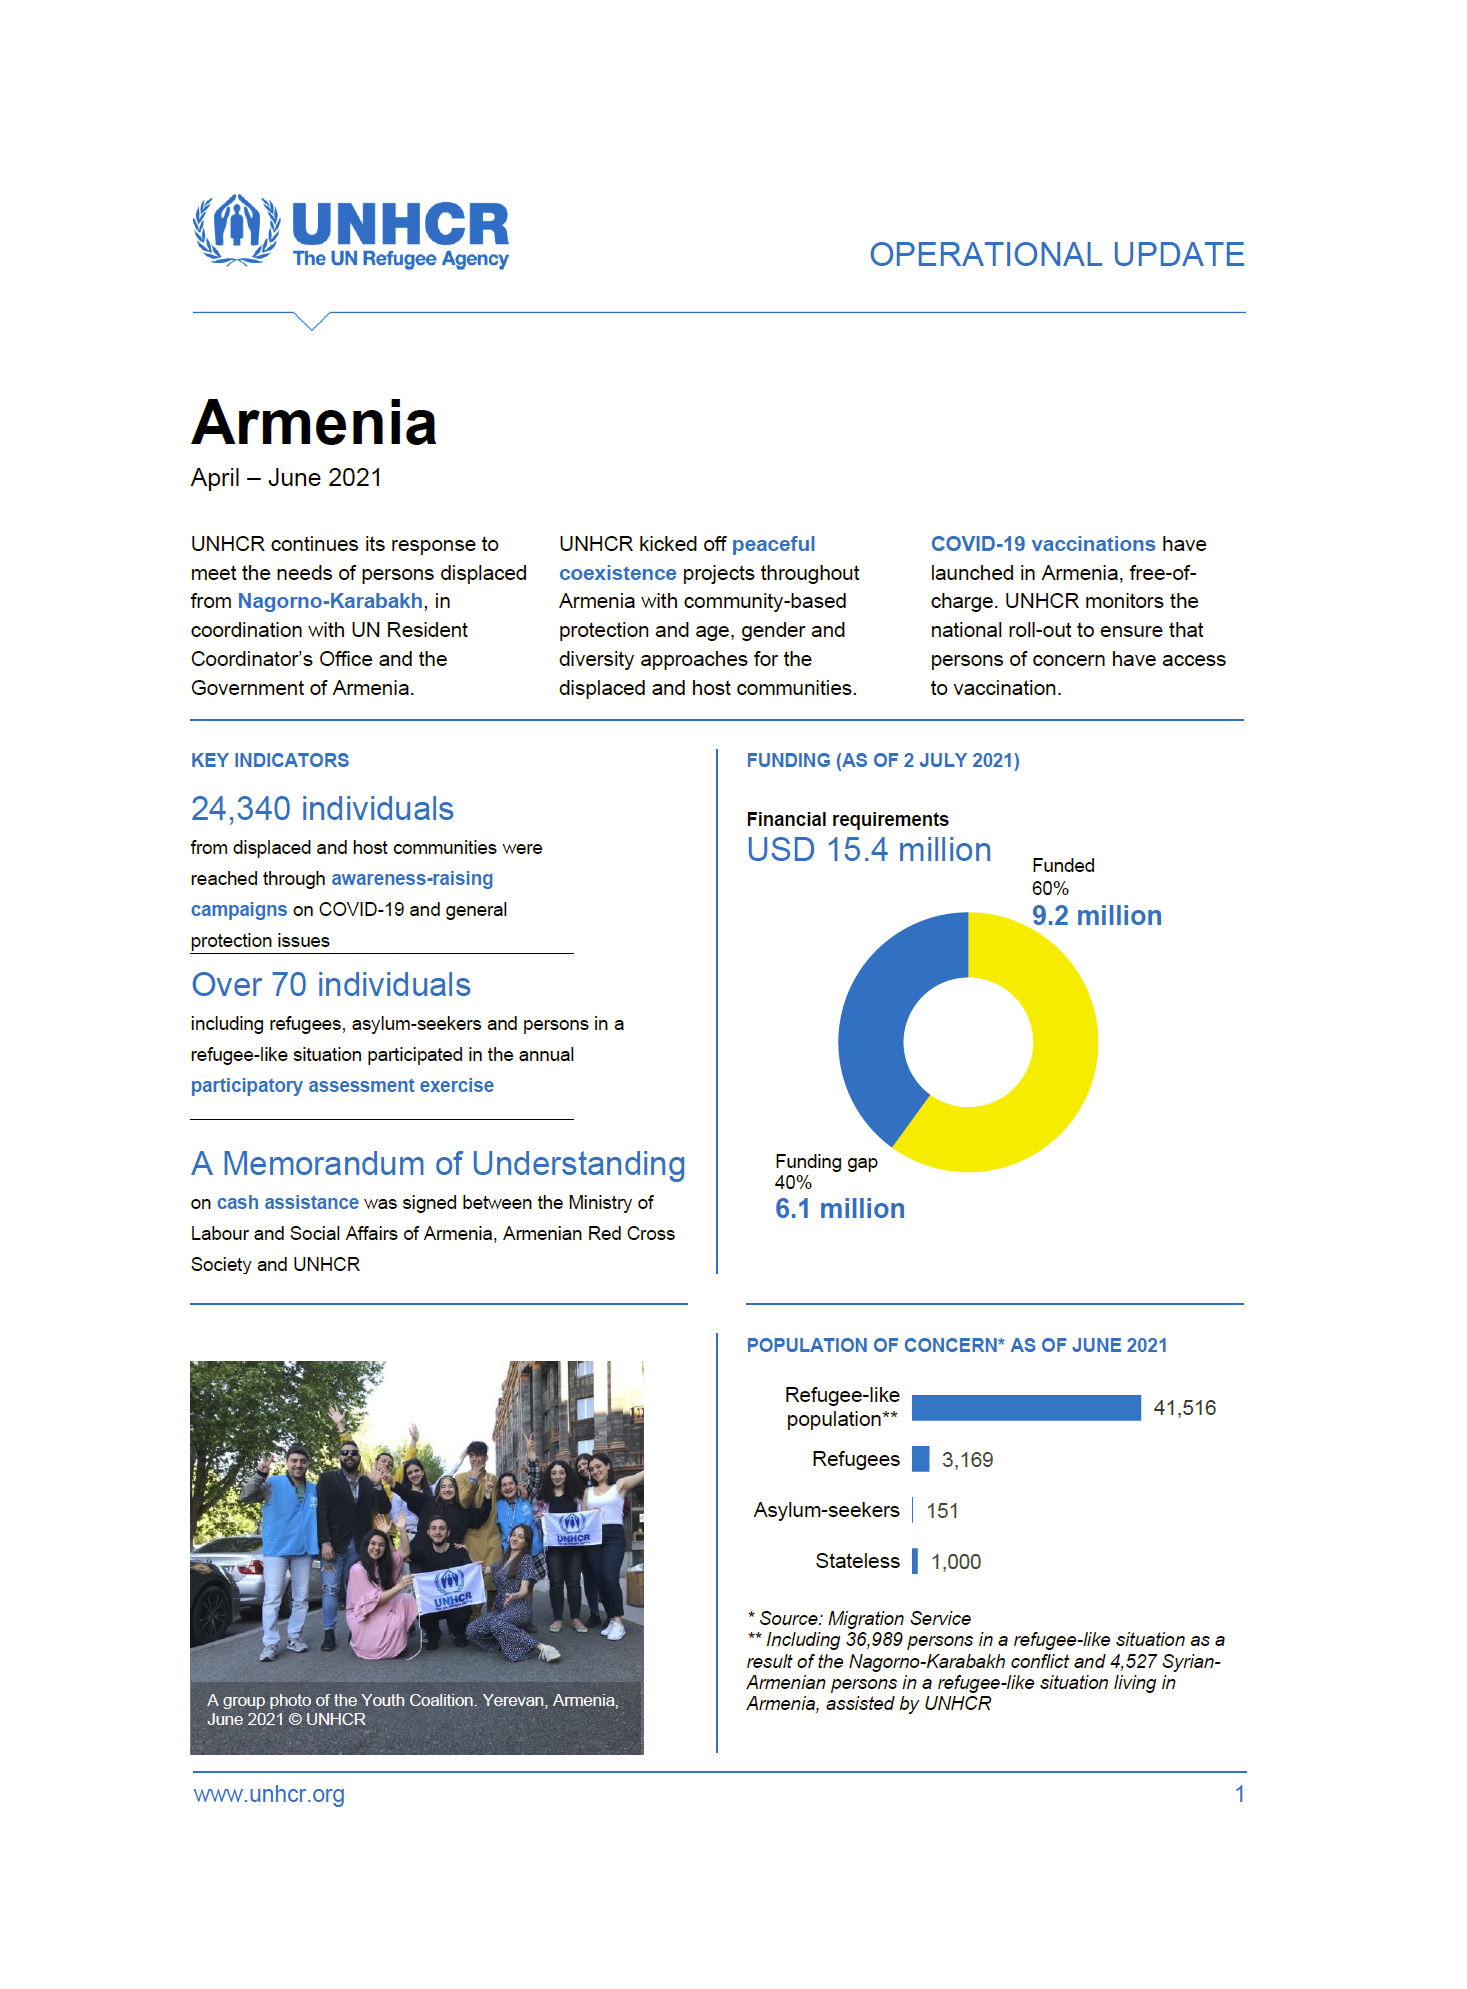 UNHCR Armenia Operational Update's cover page for April-June 2021.